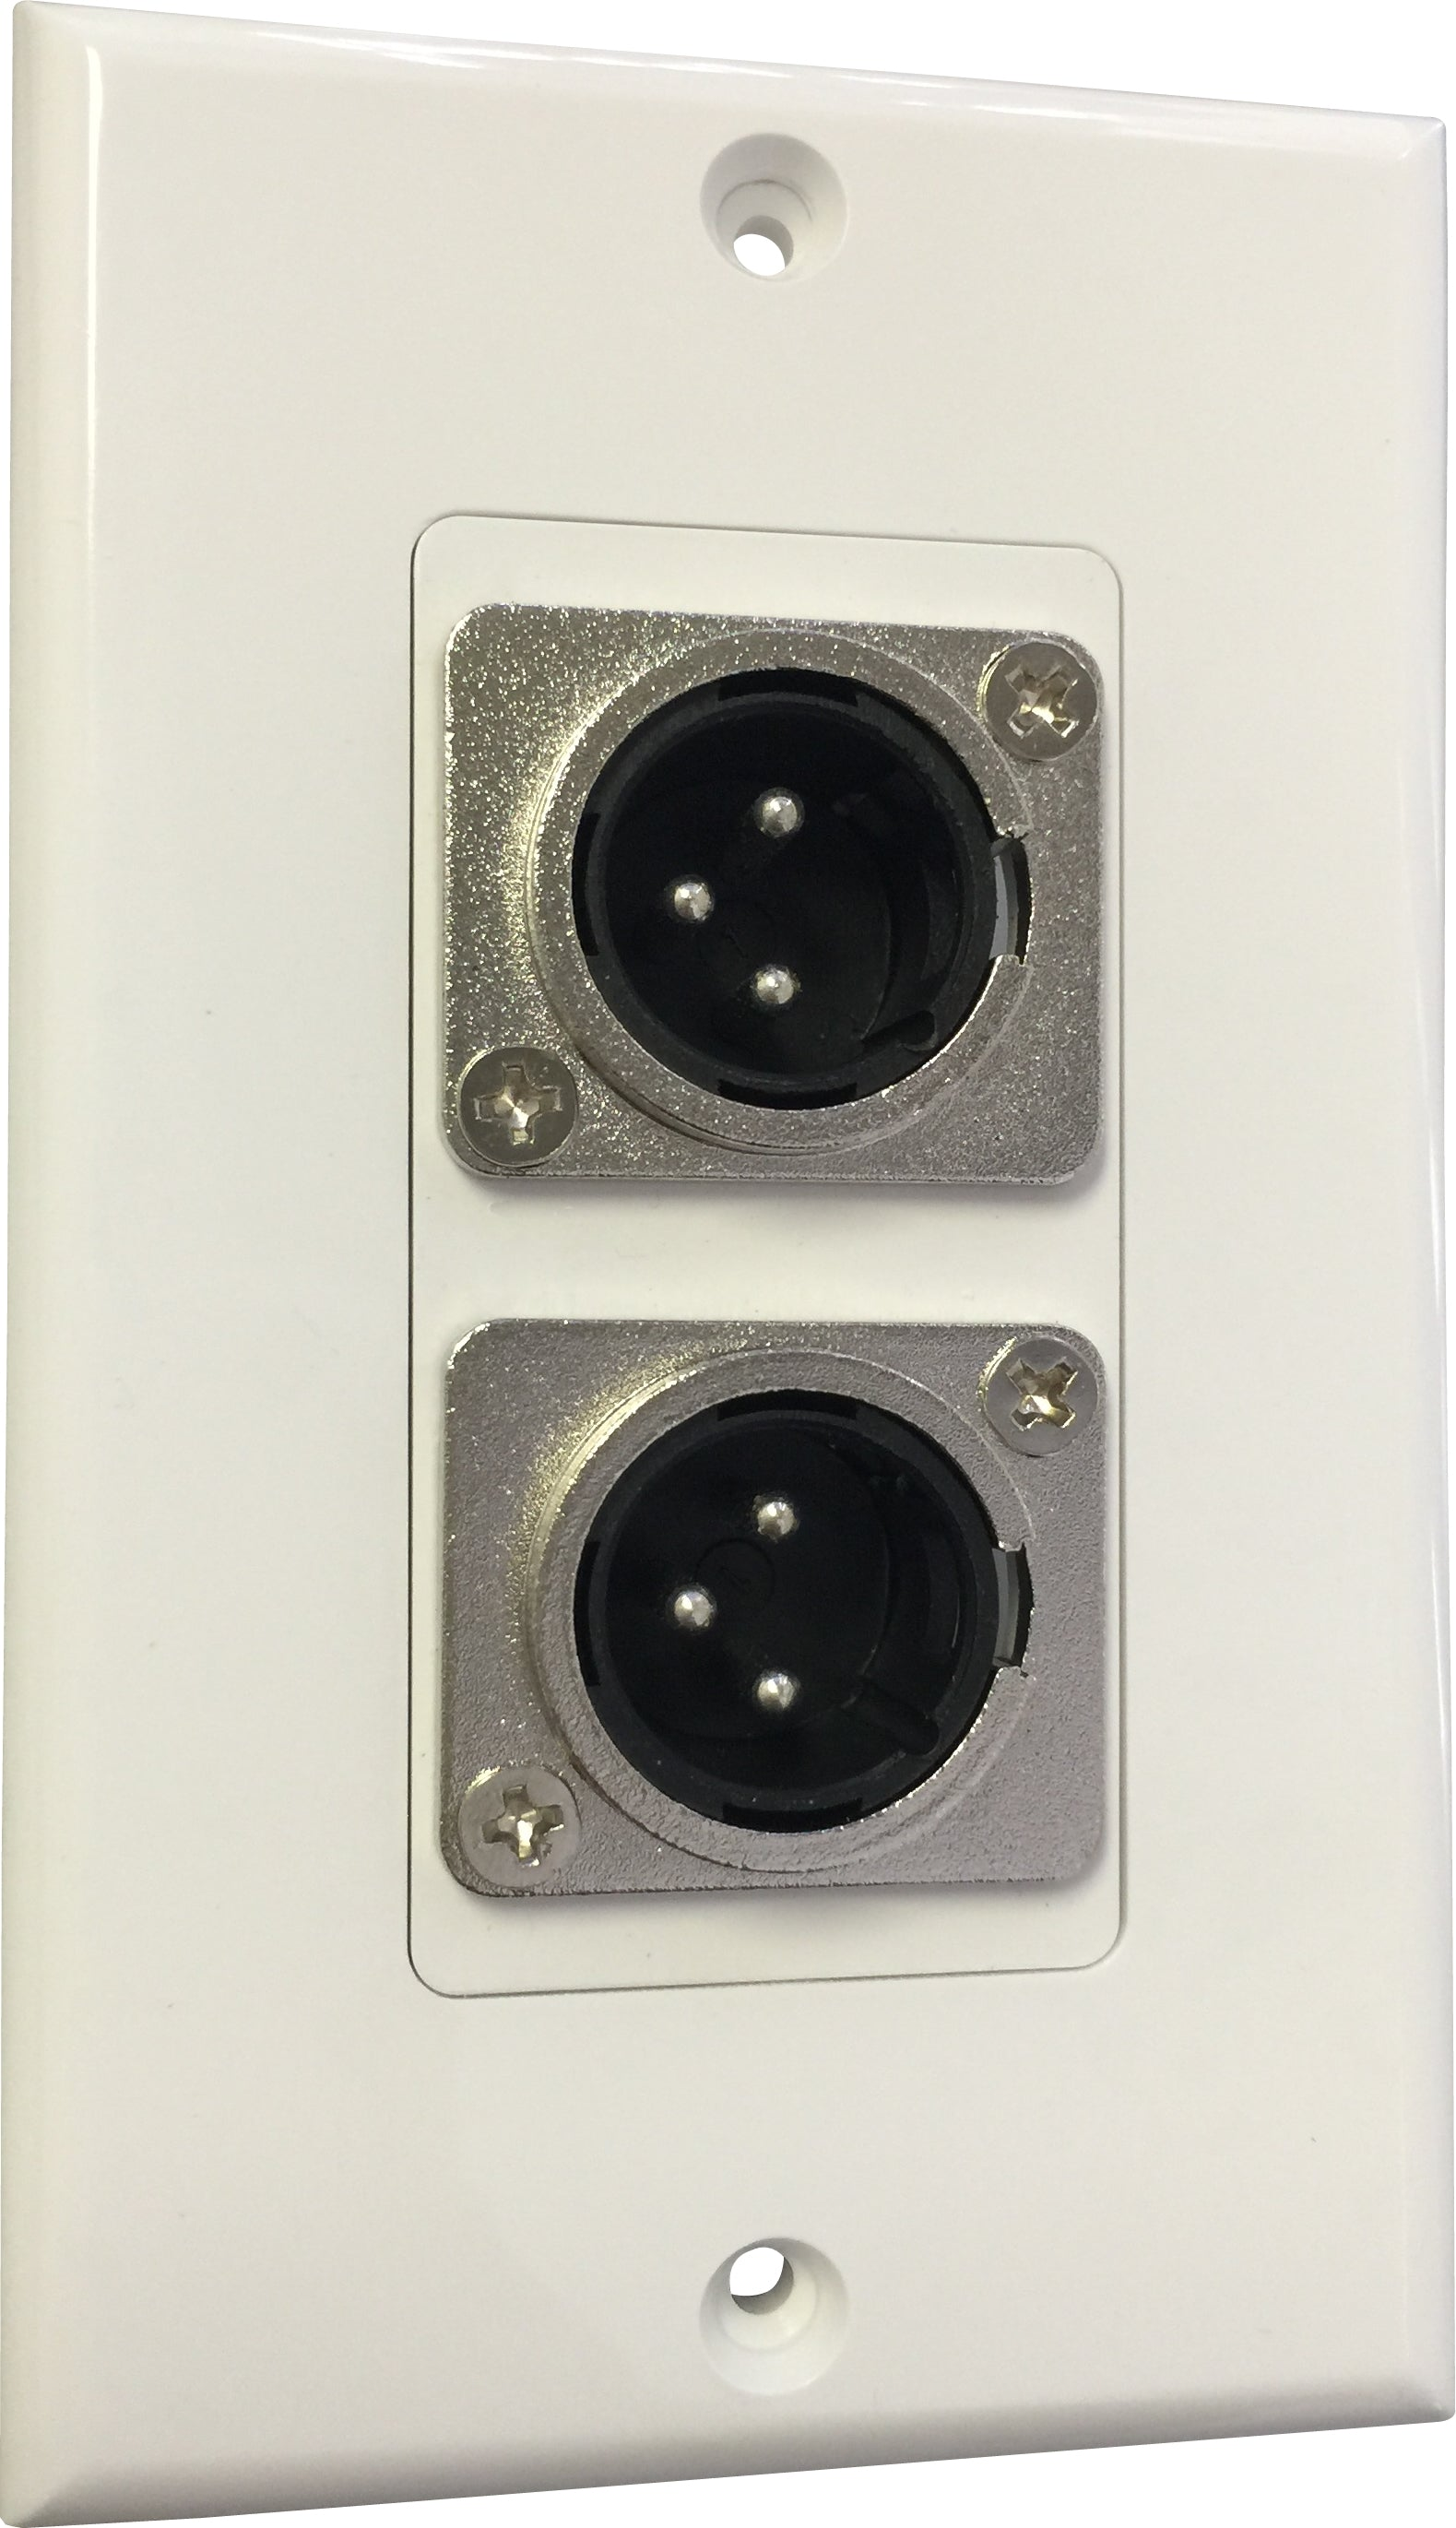 07-6072-32 Plastic Wall Plate with 2*XLR Male